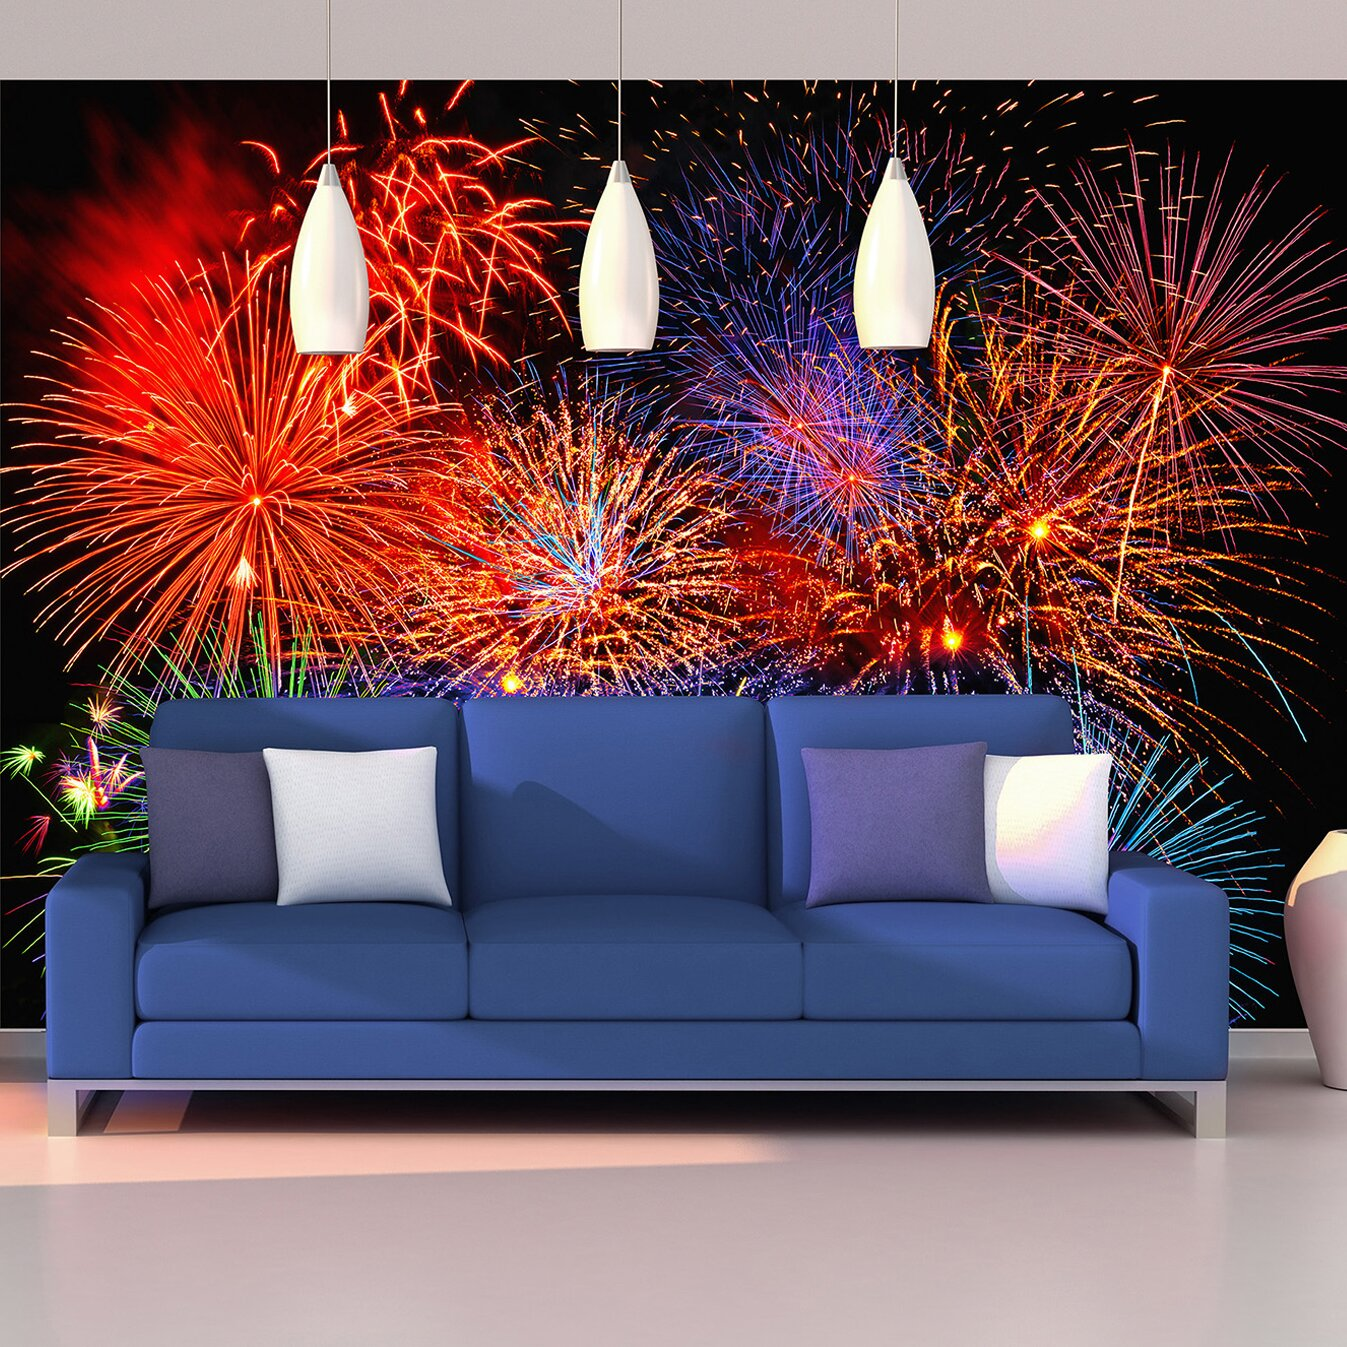 Brewster home fashions ideal d cor fireworks wall mural for Brewster home fashions wall mural